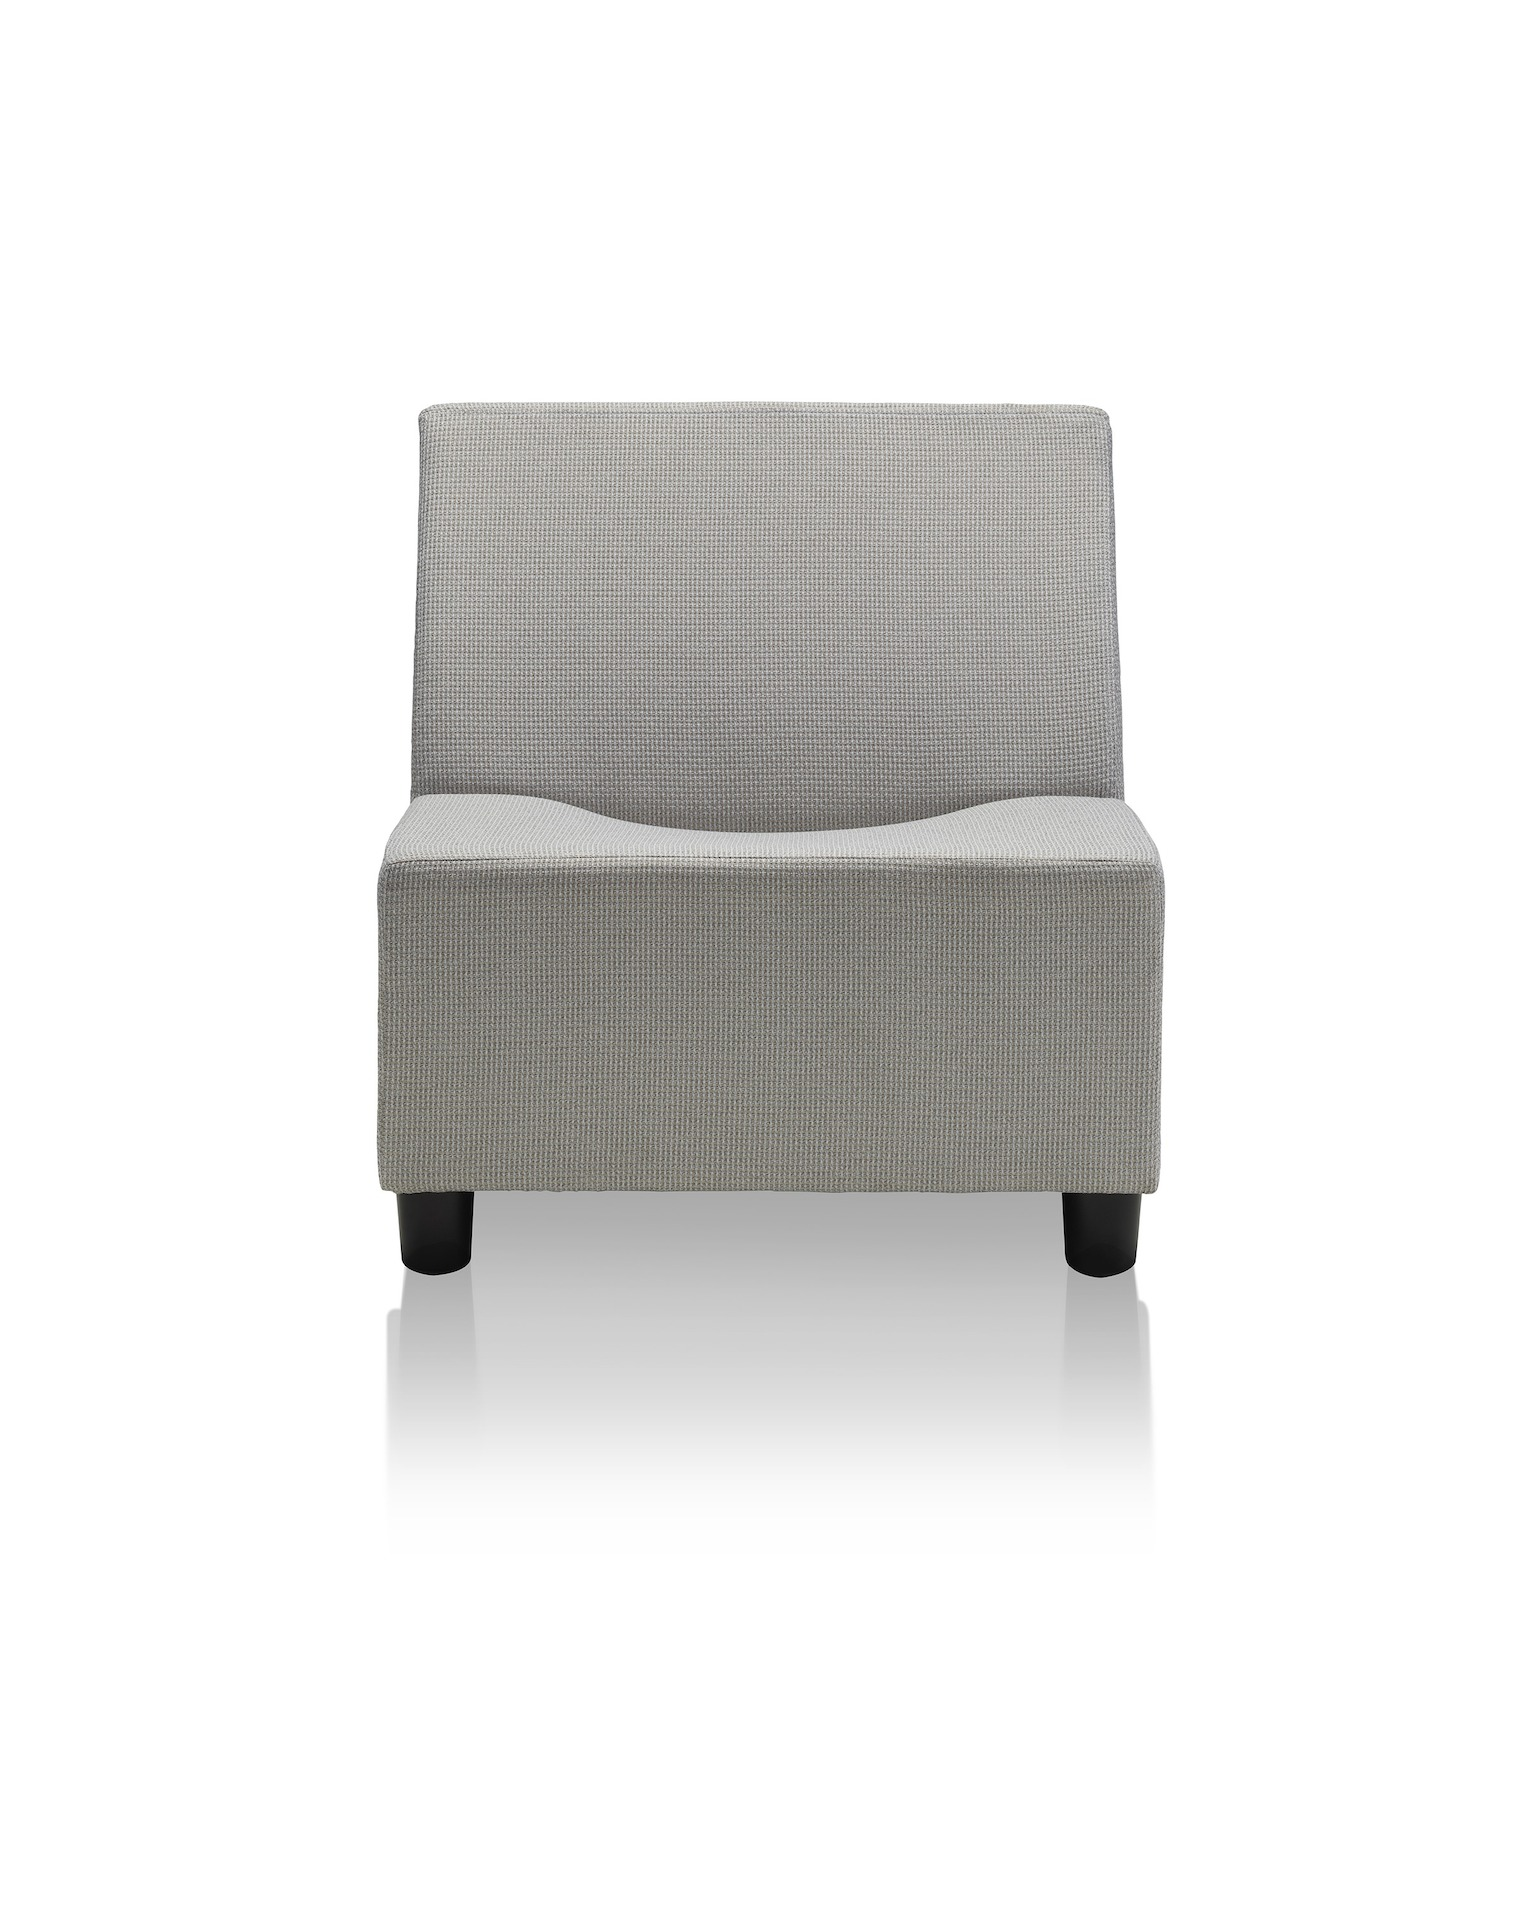 li images rendition chair seating p swoop products furniture armless tif miller product herman swp lounge